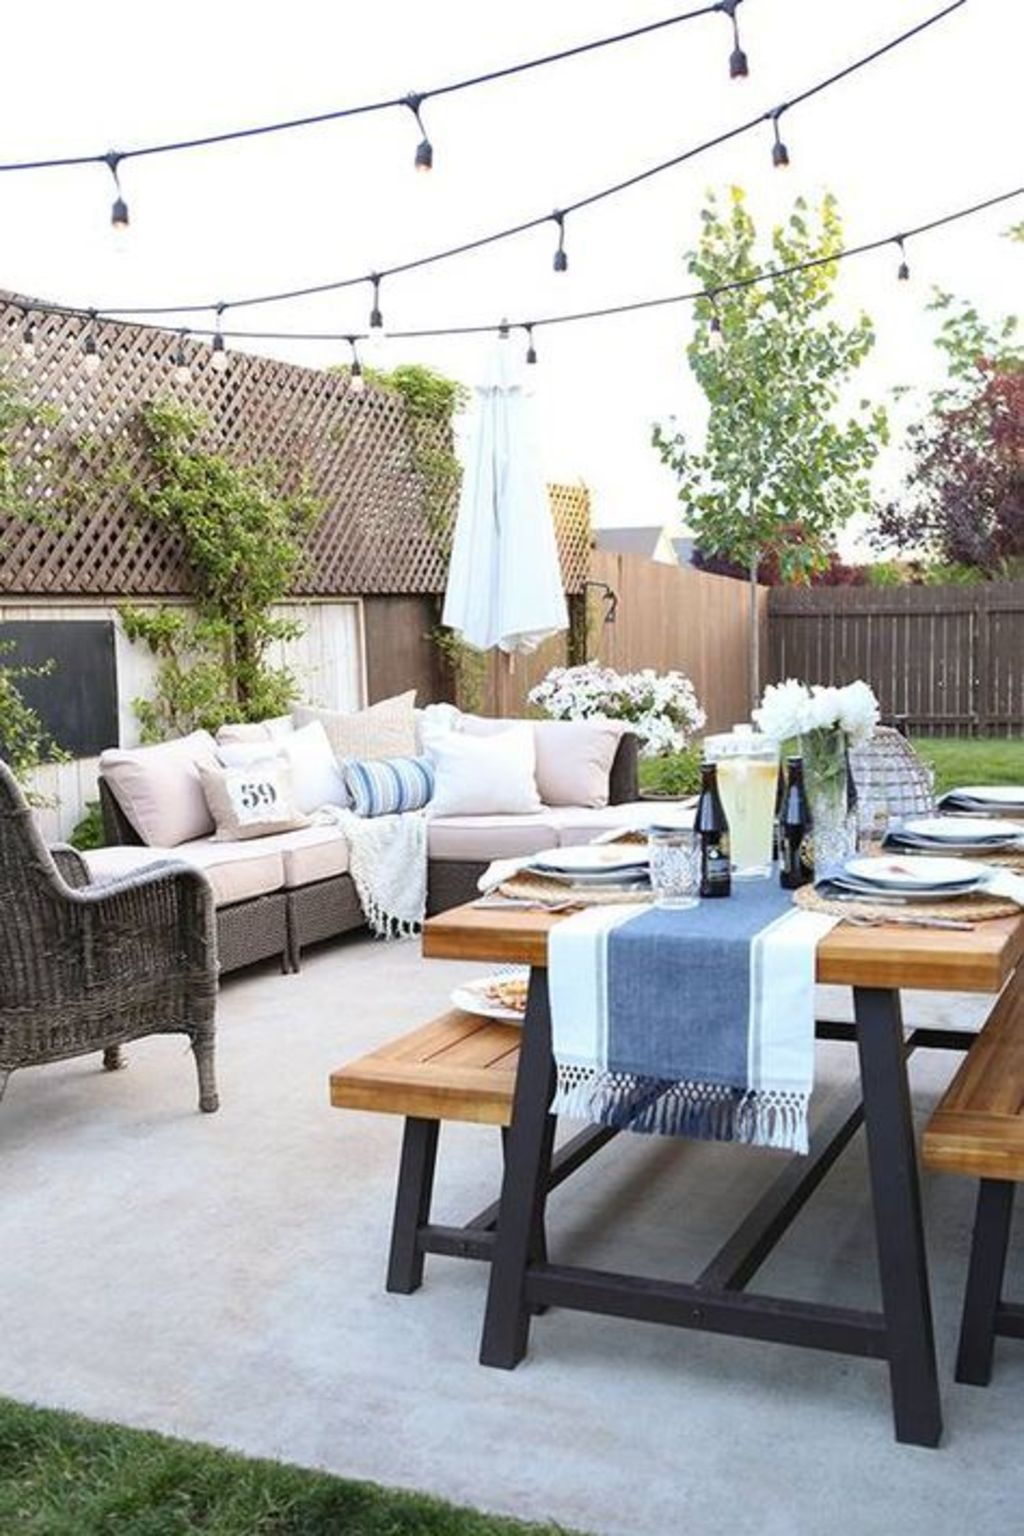 Ideas for your outdoor living areas fireplaces fire pits outdoor kitchens patios living areas and more Part 7